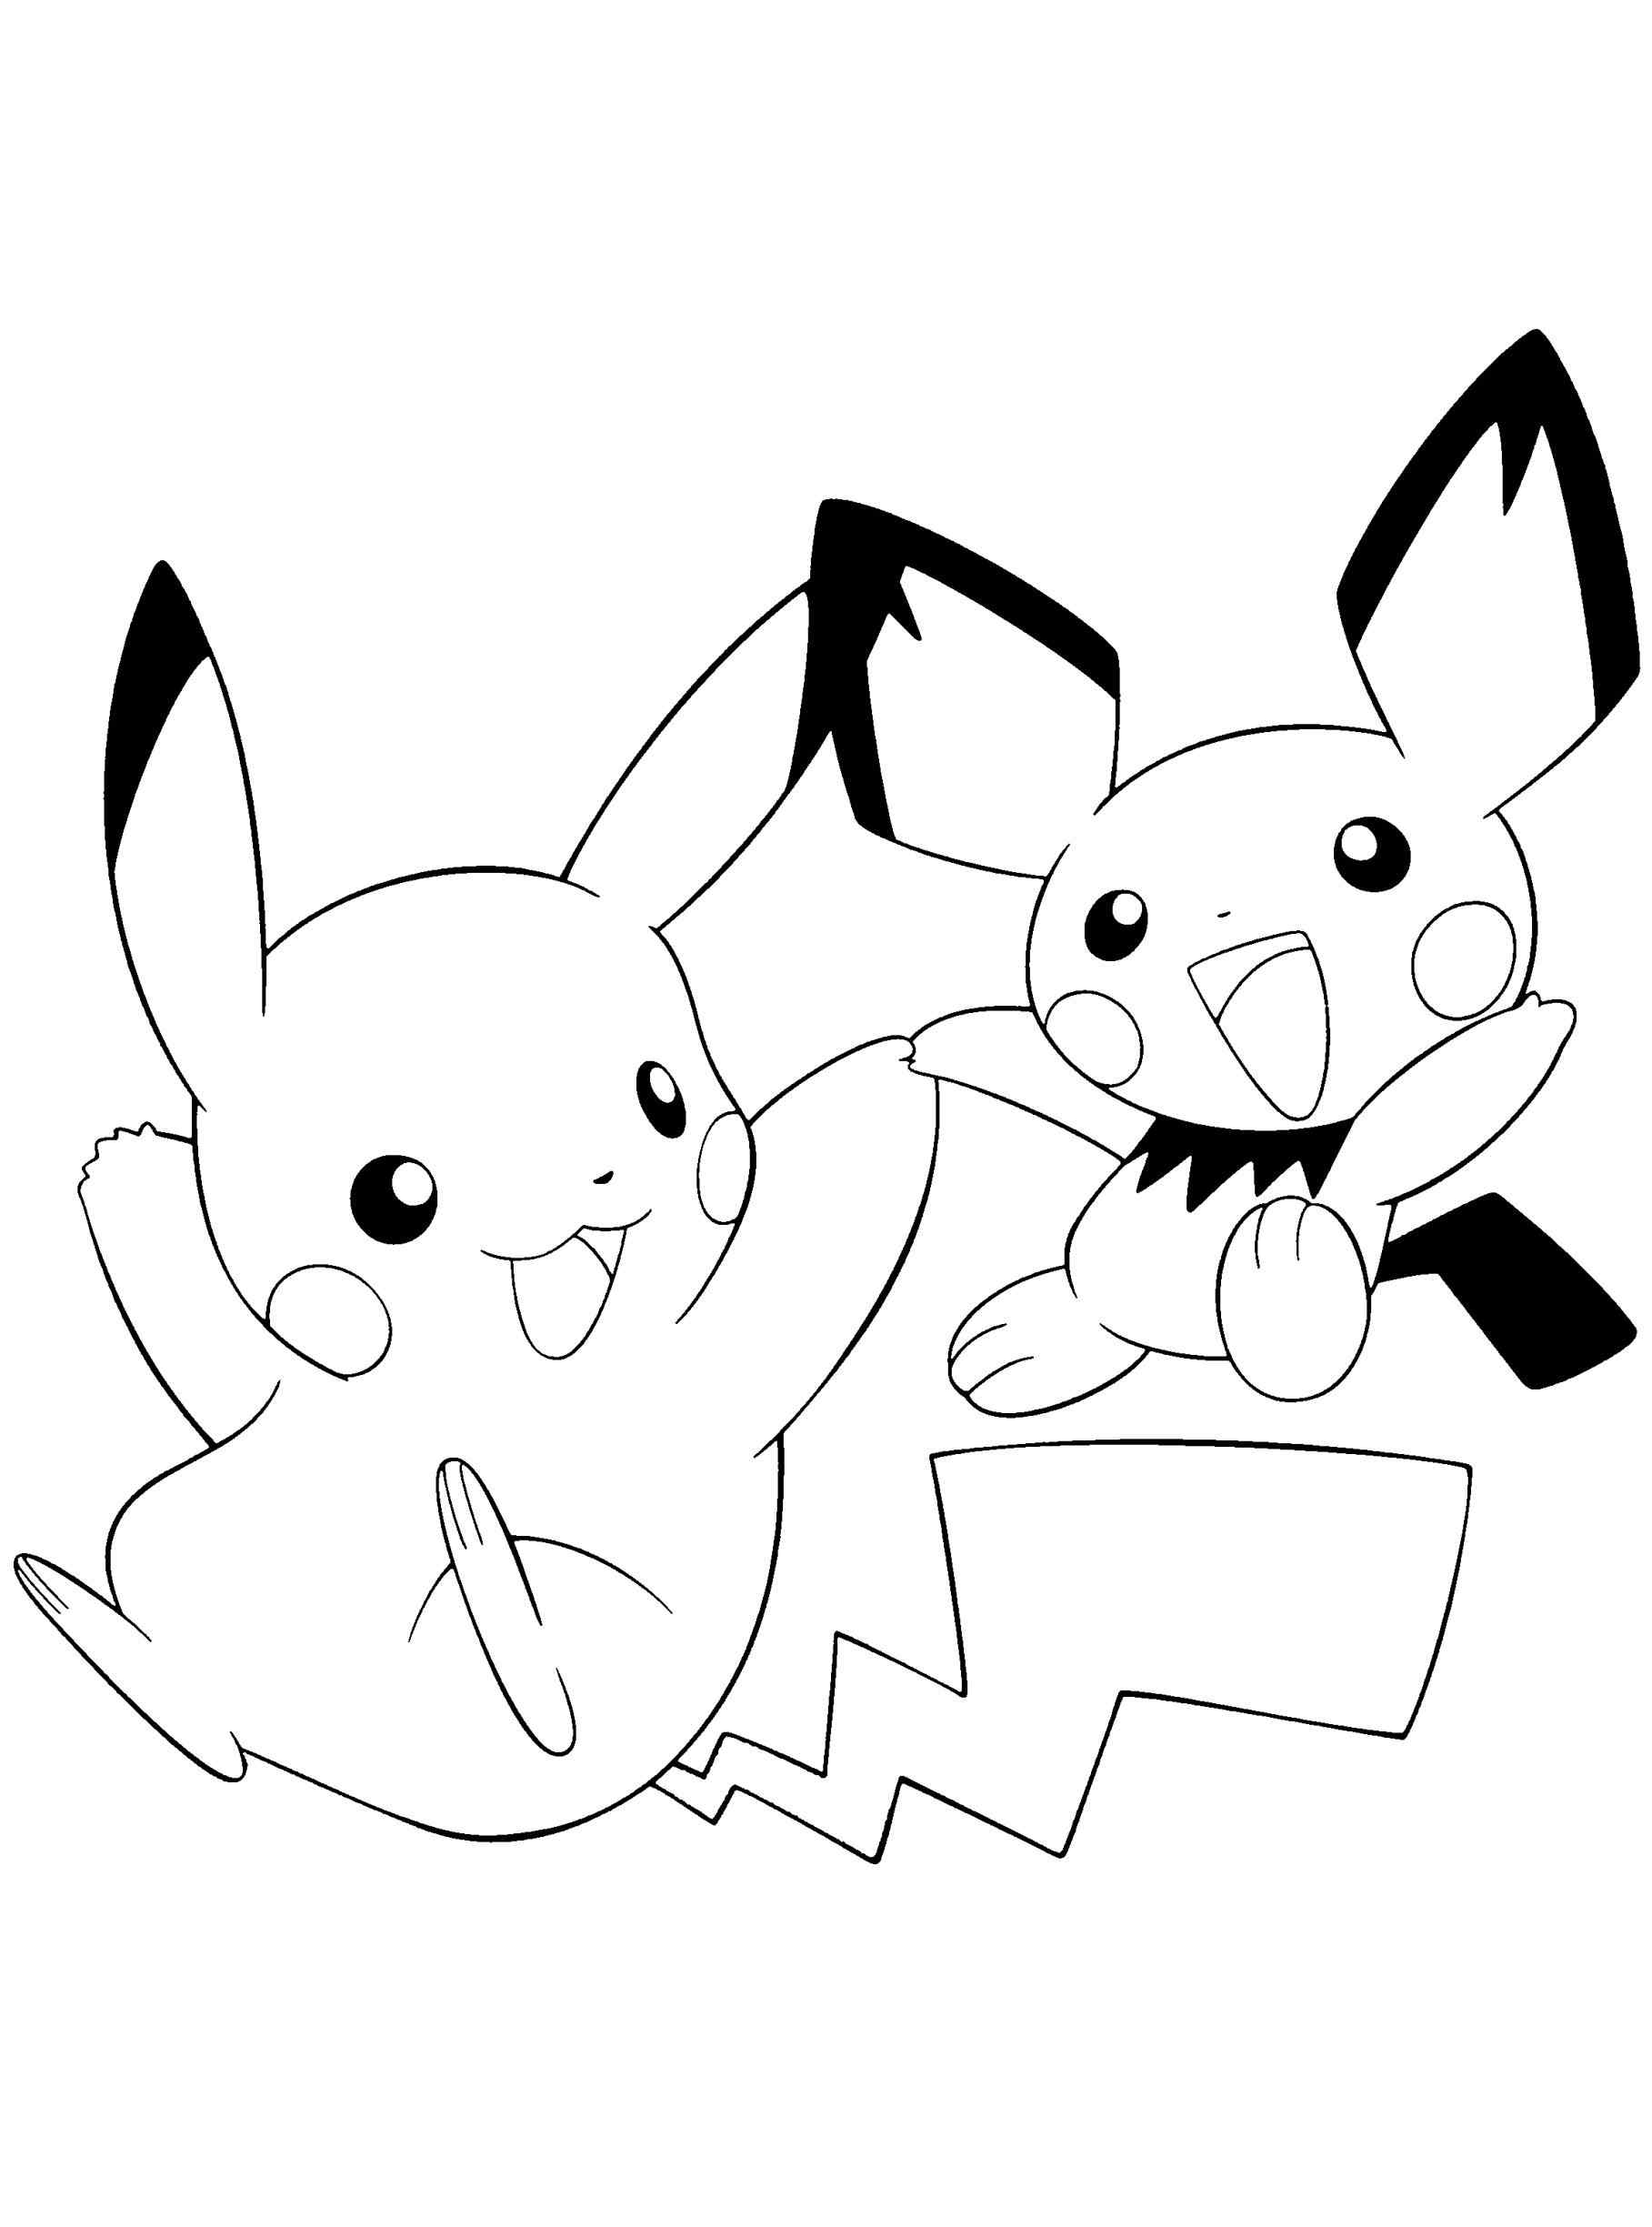 pikachu images for coloring pikachu images for coloring pikachu coloring for images